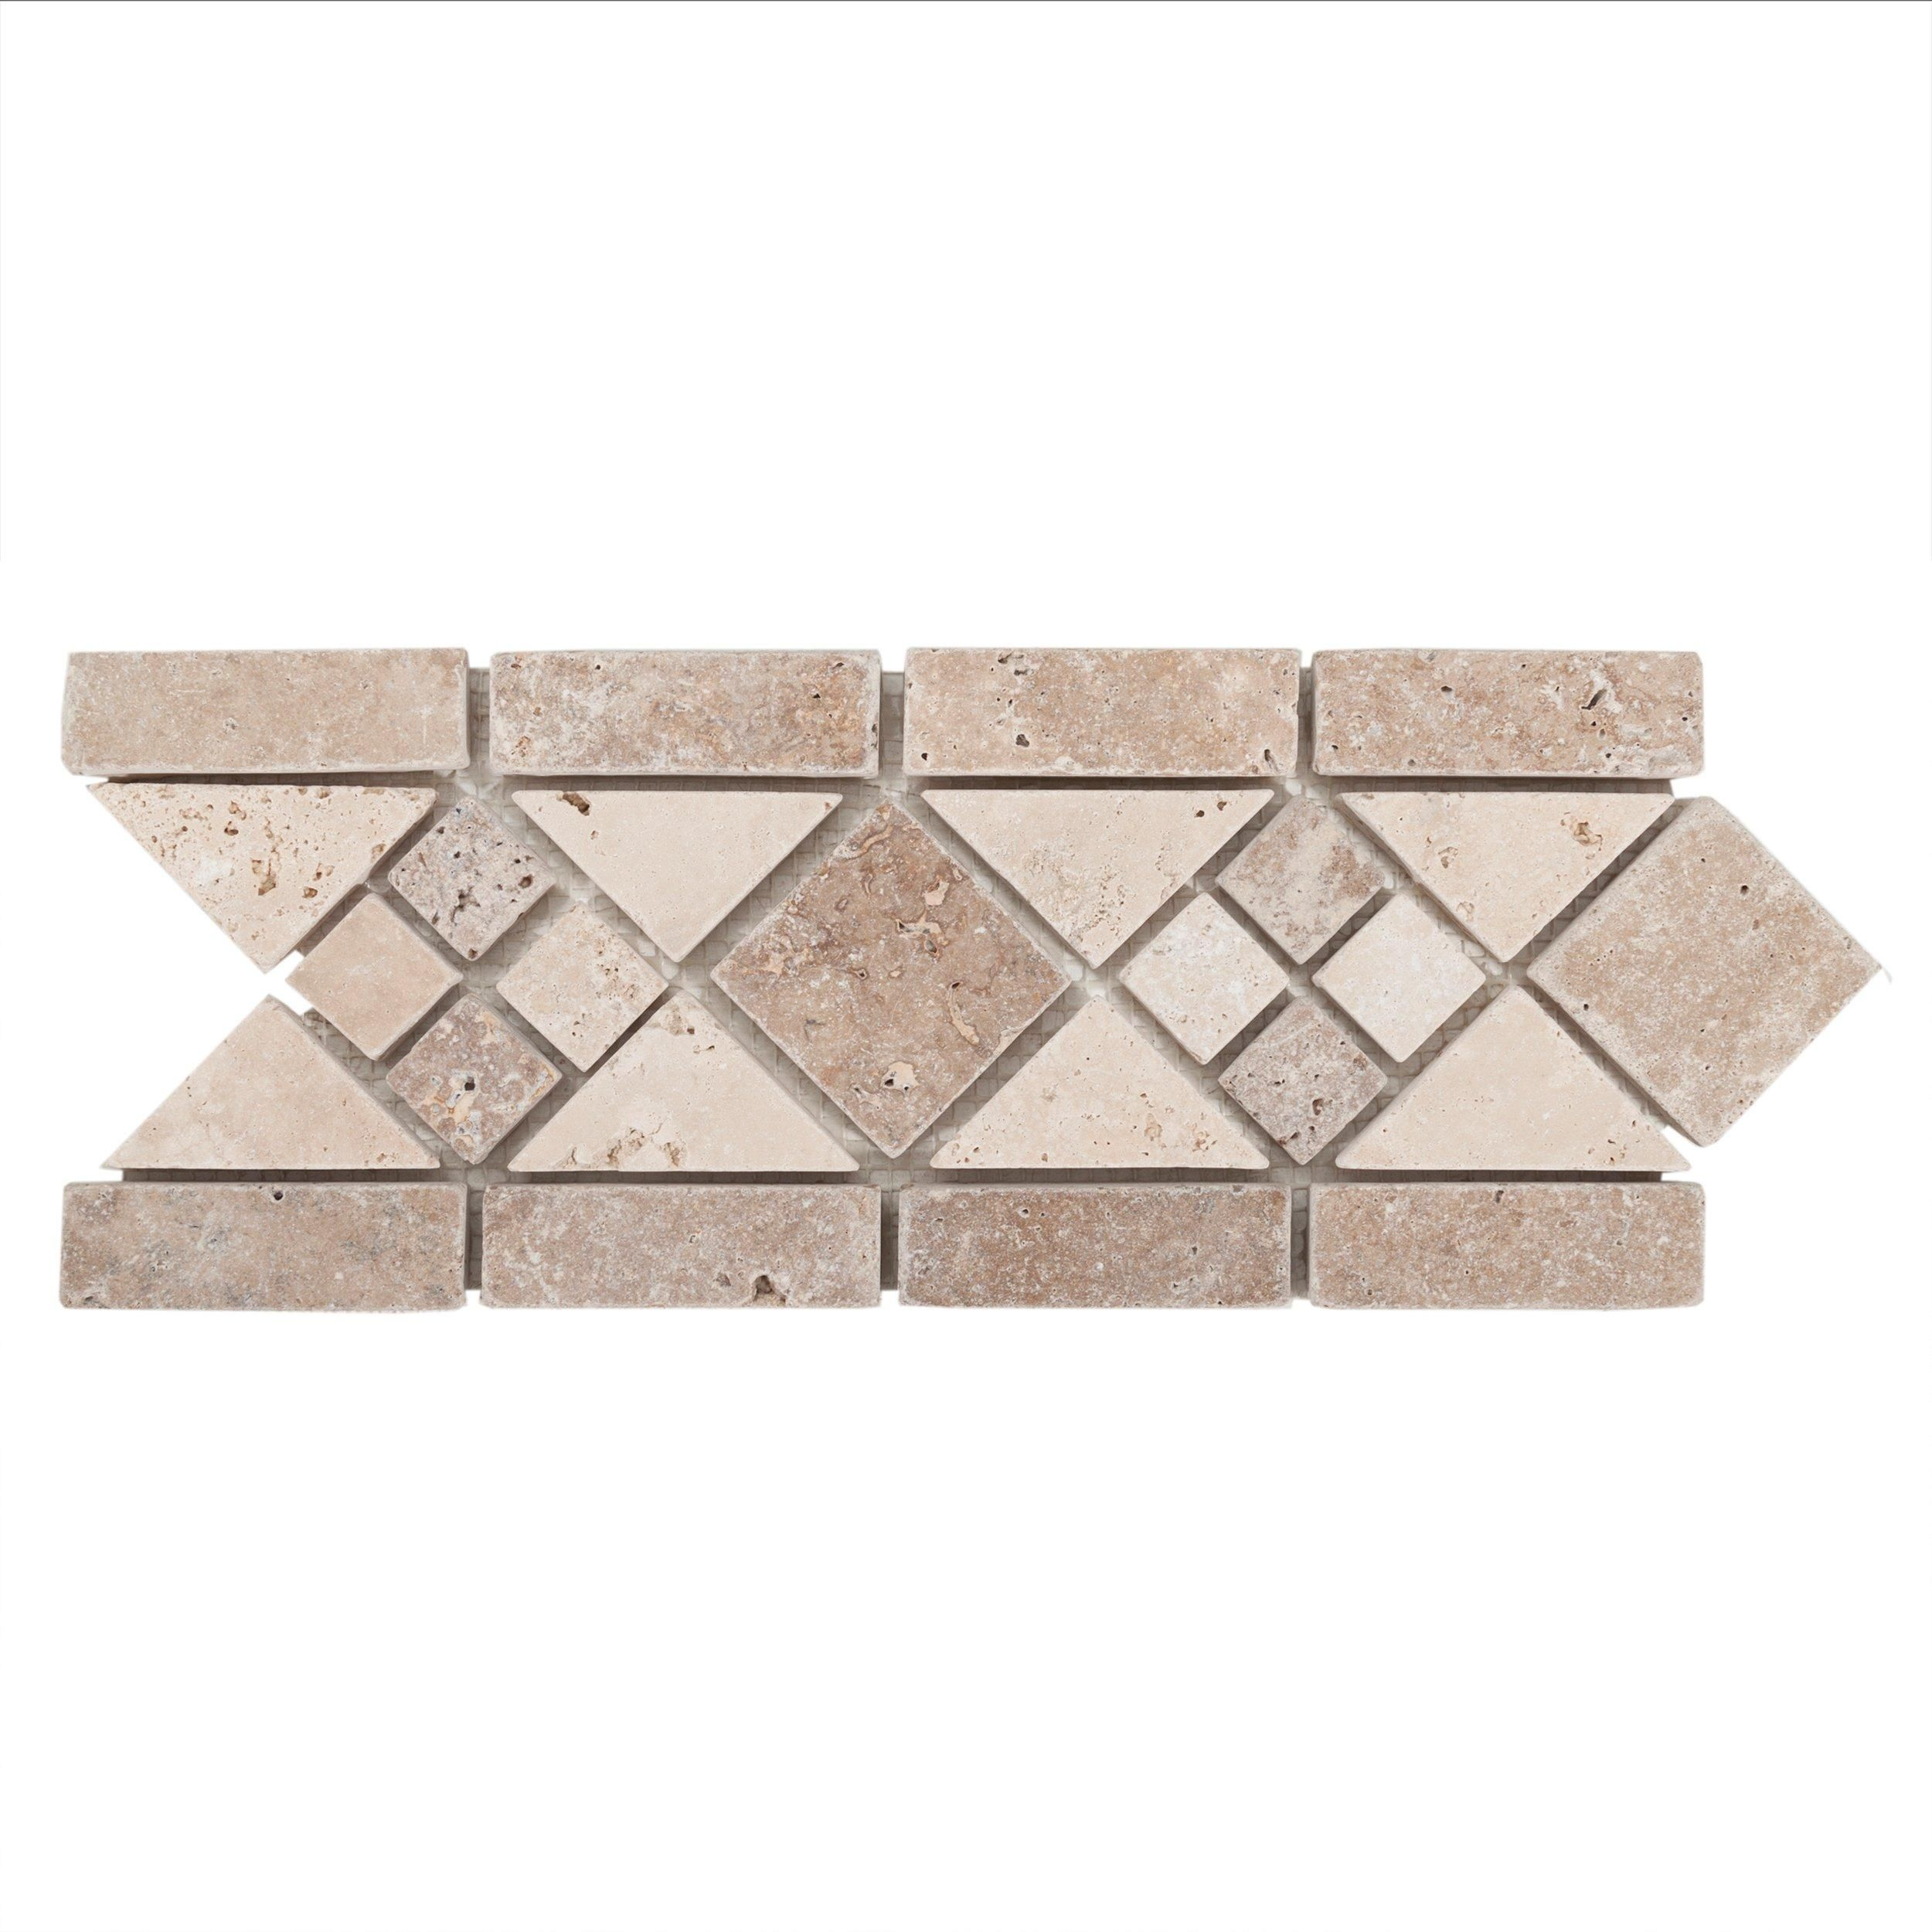 Norna Decorative Travertine Border Floor Decor In 2020 Floor